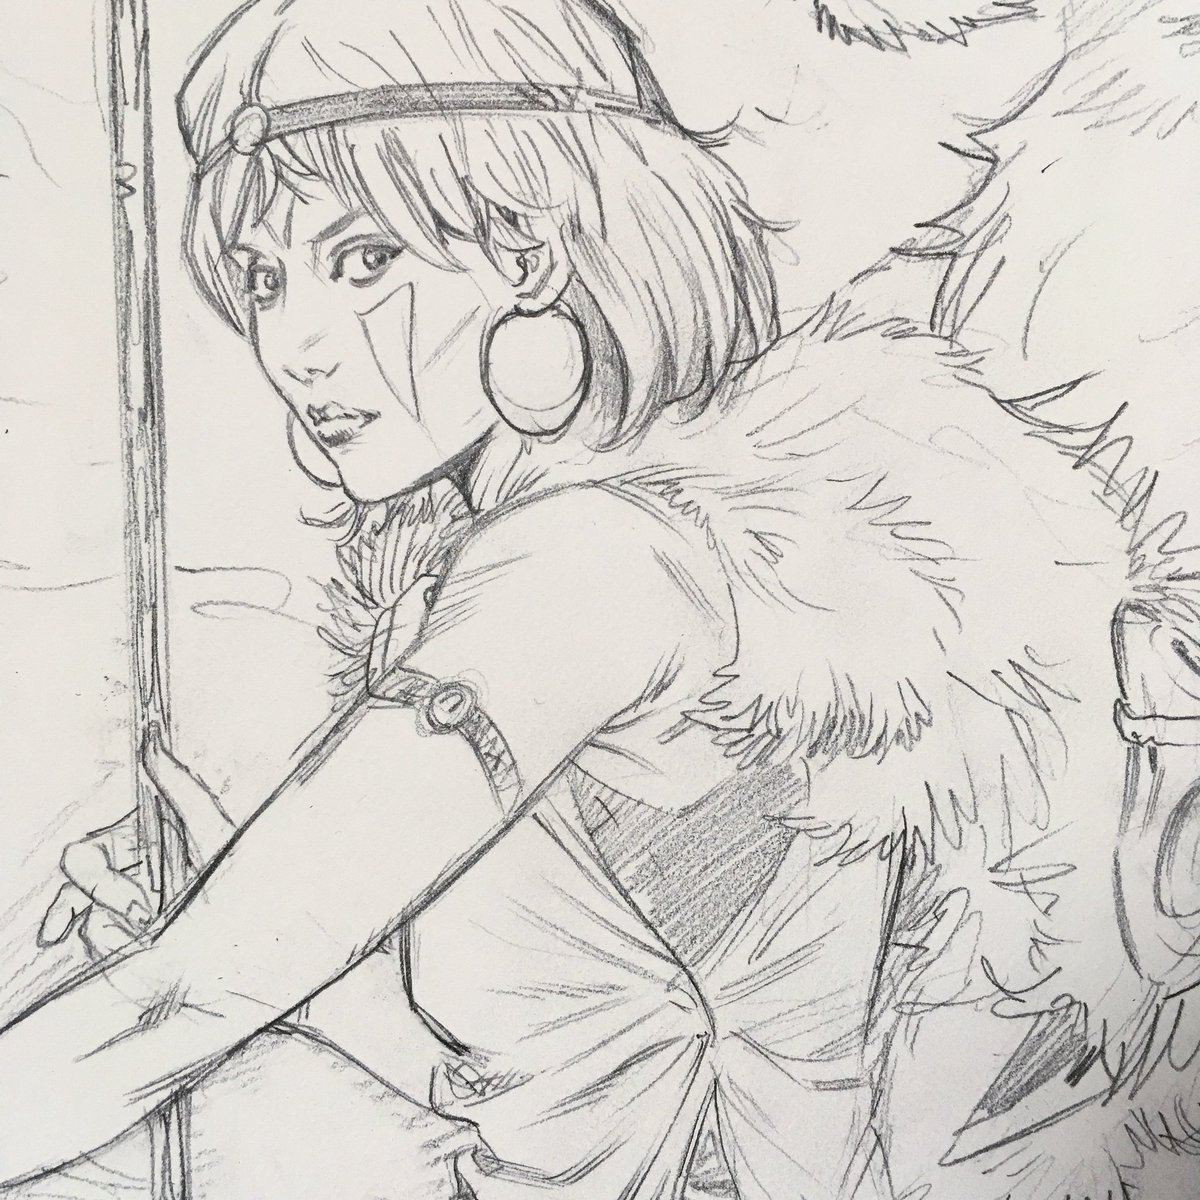 Ryan Kelly On Twitter Pencils For A Commission San Princess